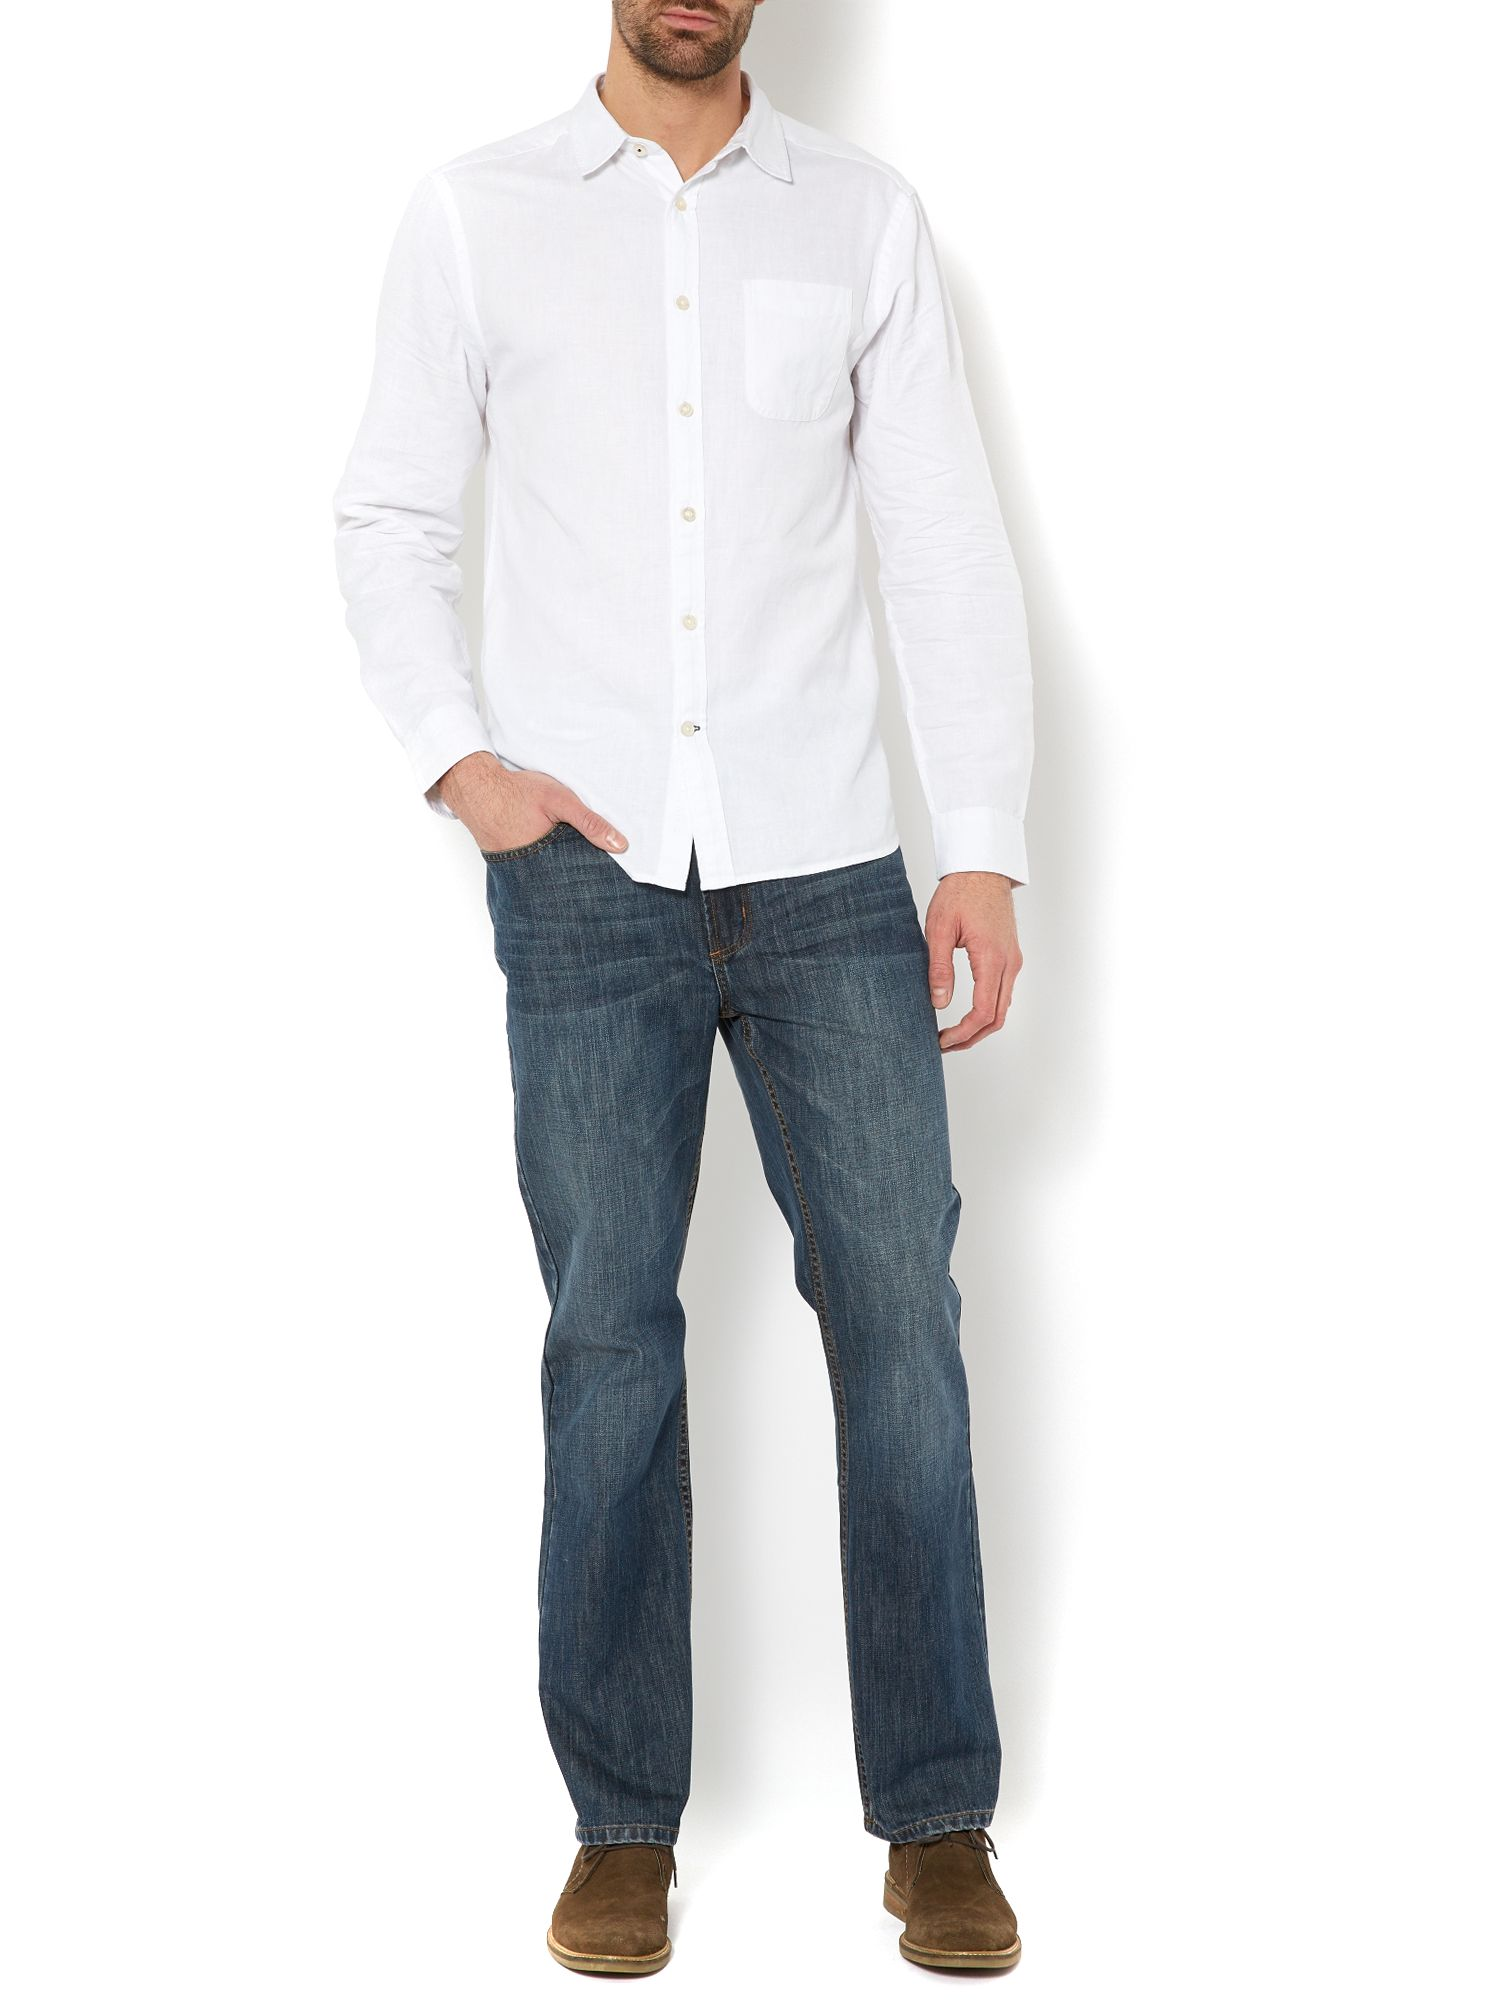 huntington linen shirt